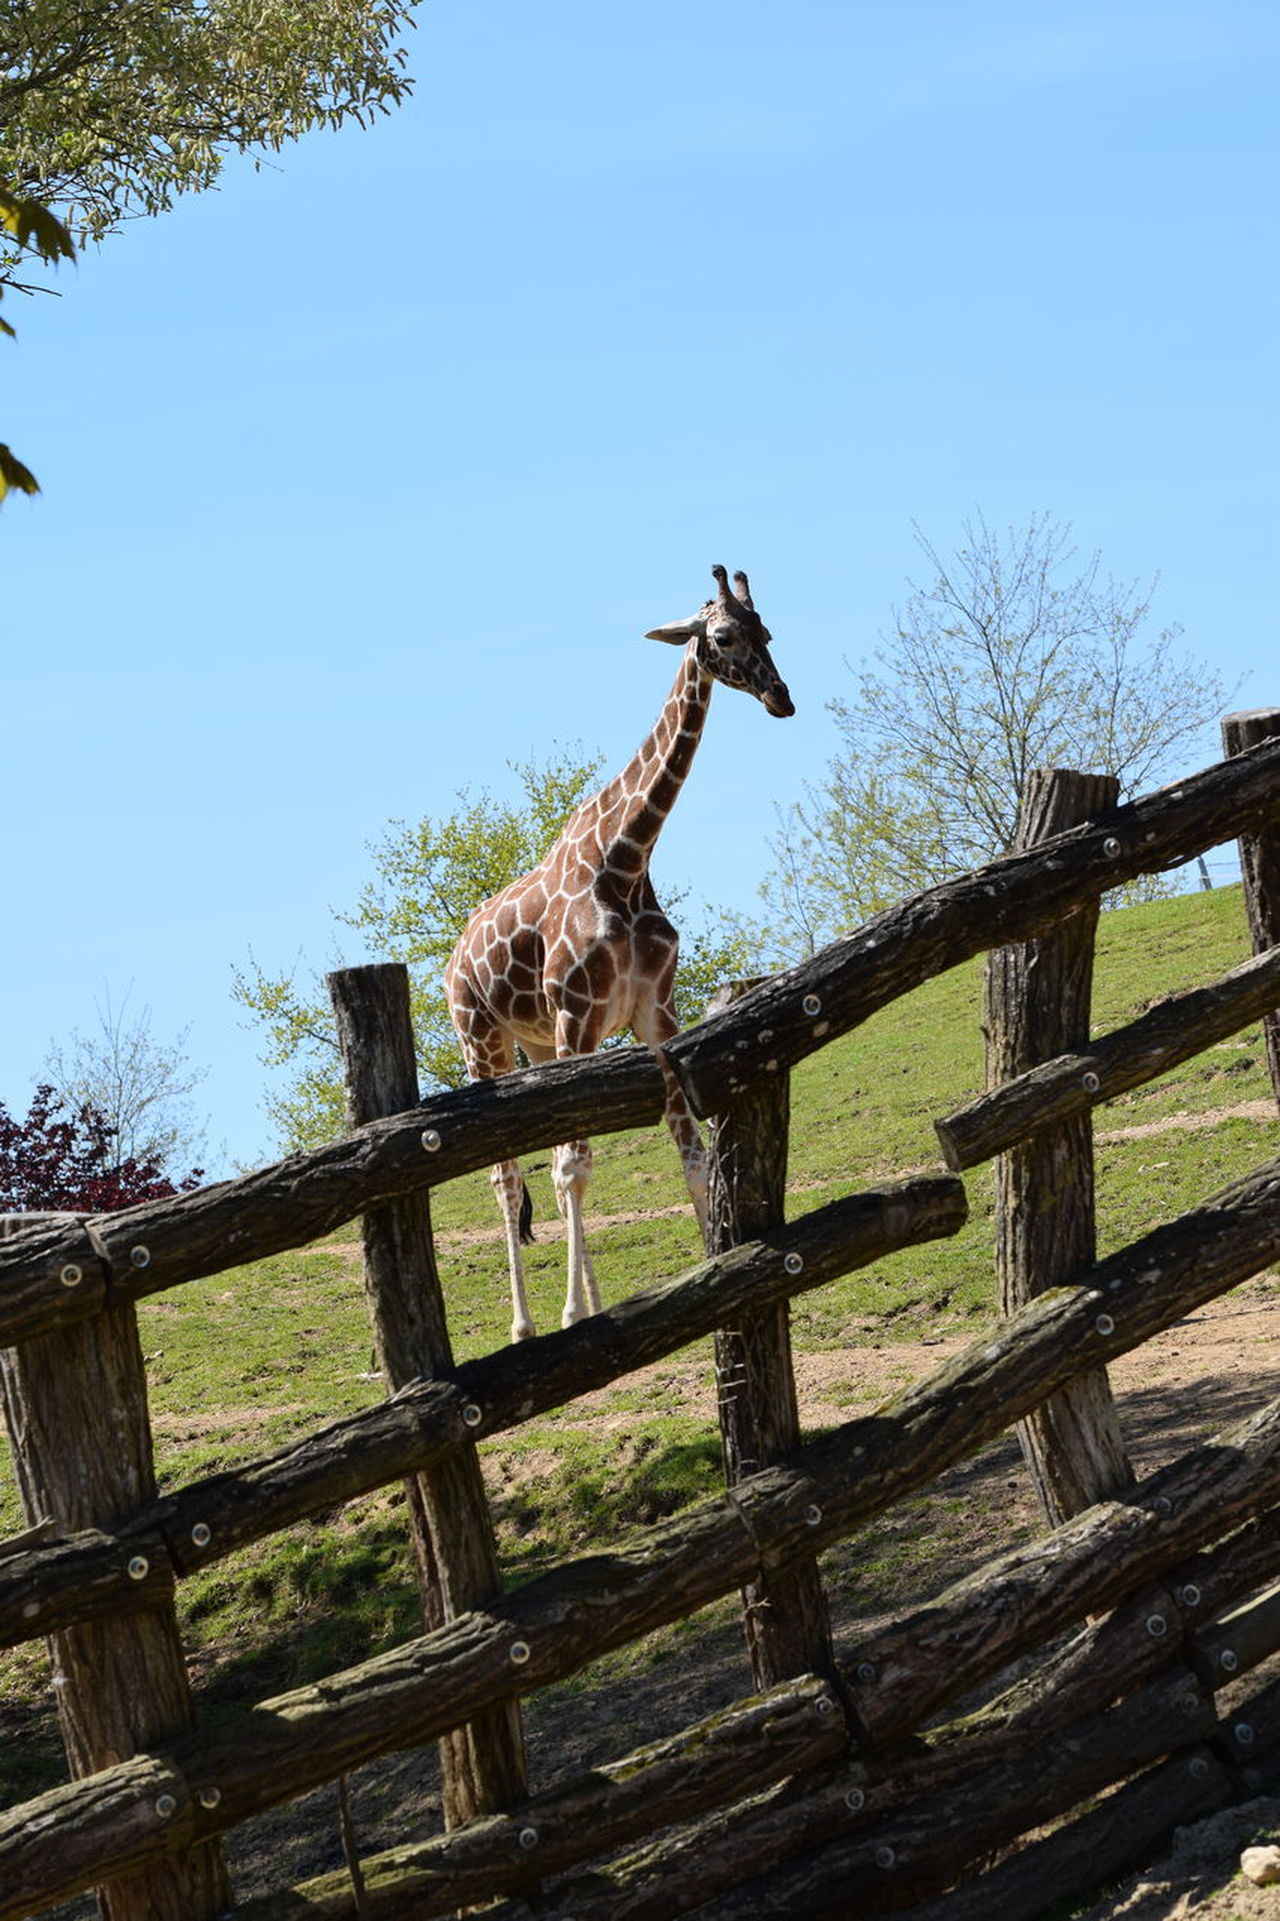 giraffe Animal Themes Animals In The Wild Clear Sky Day Giraffe Low Angle View Mammal Nature No People One Animal Outdoors Sky Tree Wood - Material